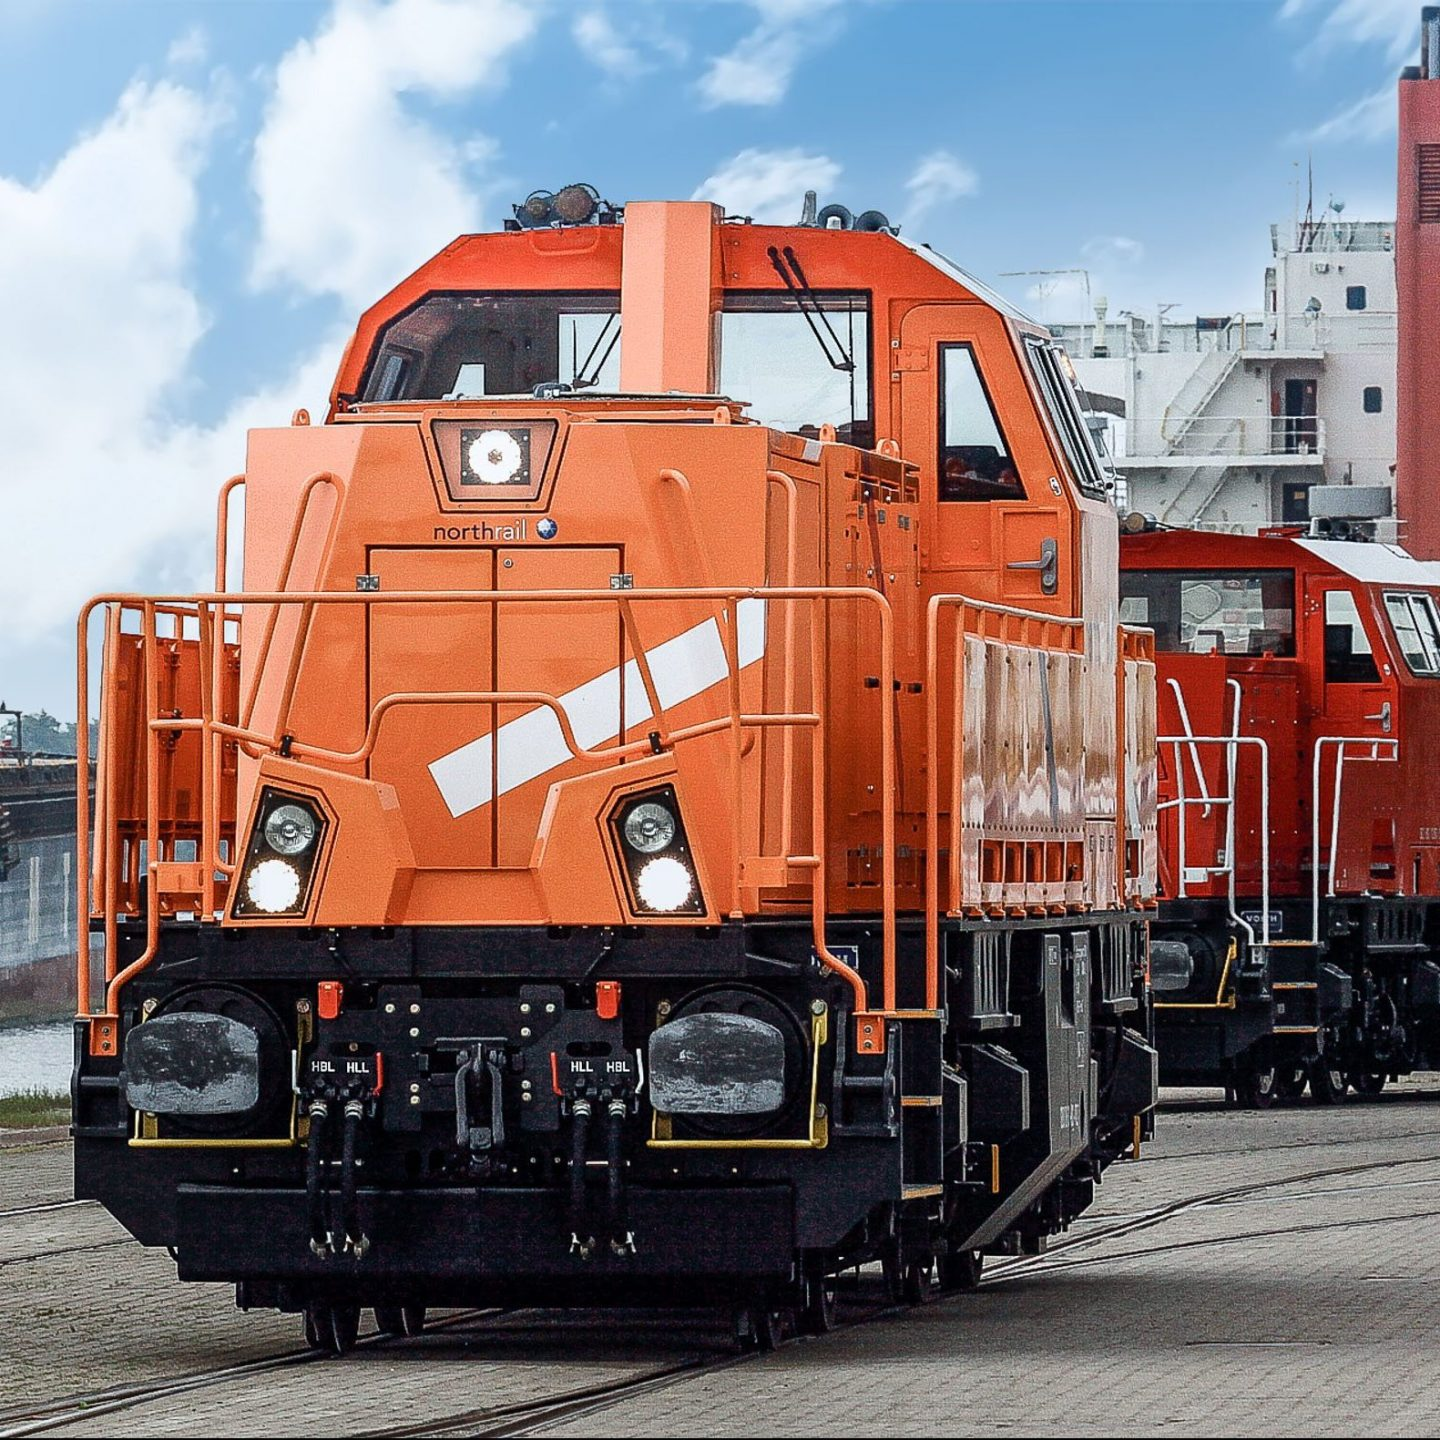 Paribus Rail Portfolio II - Northrail-Lokomotive am Hafen